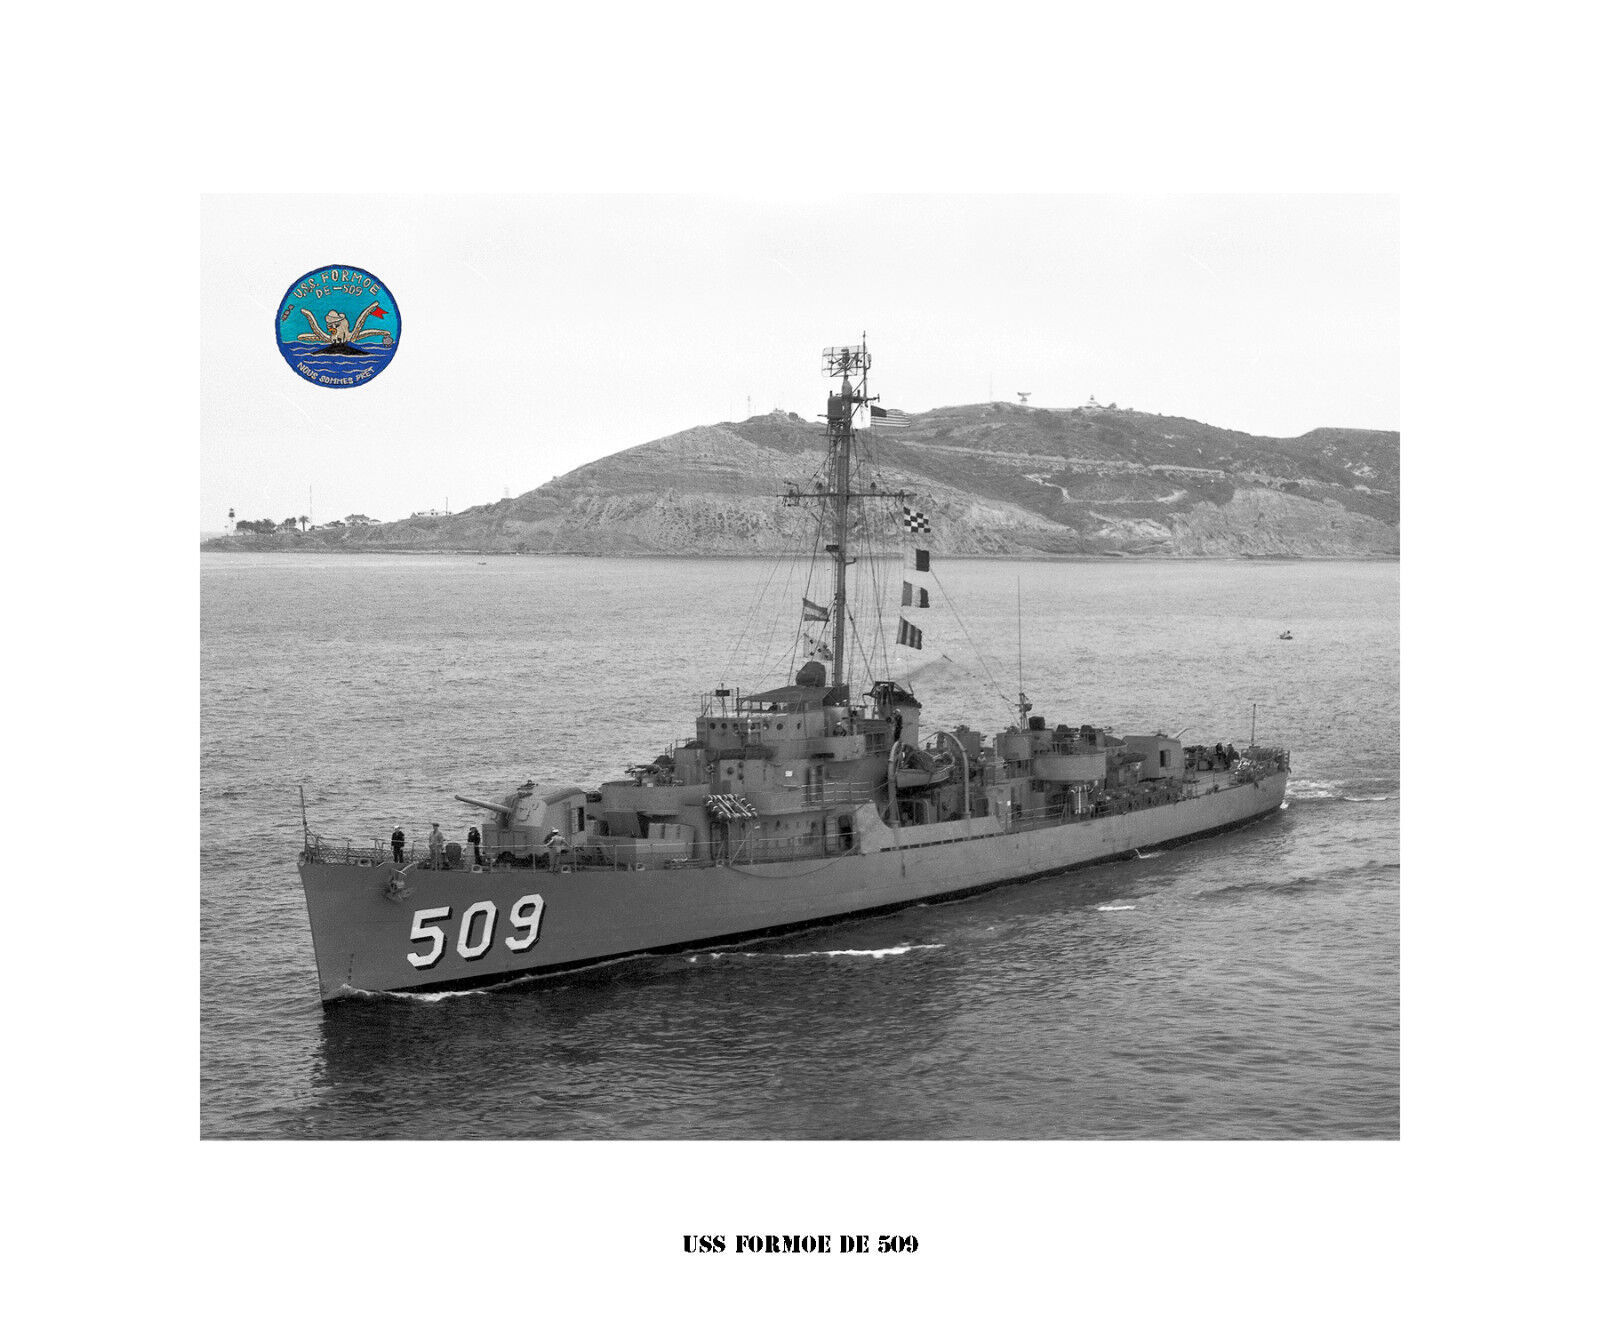 USS FORMOE DE 509  Destroyer Escort, US Ship, USN Navy Photo Print